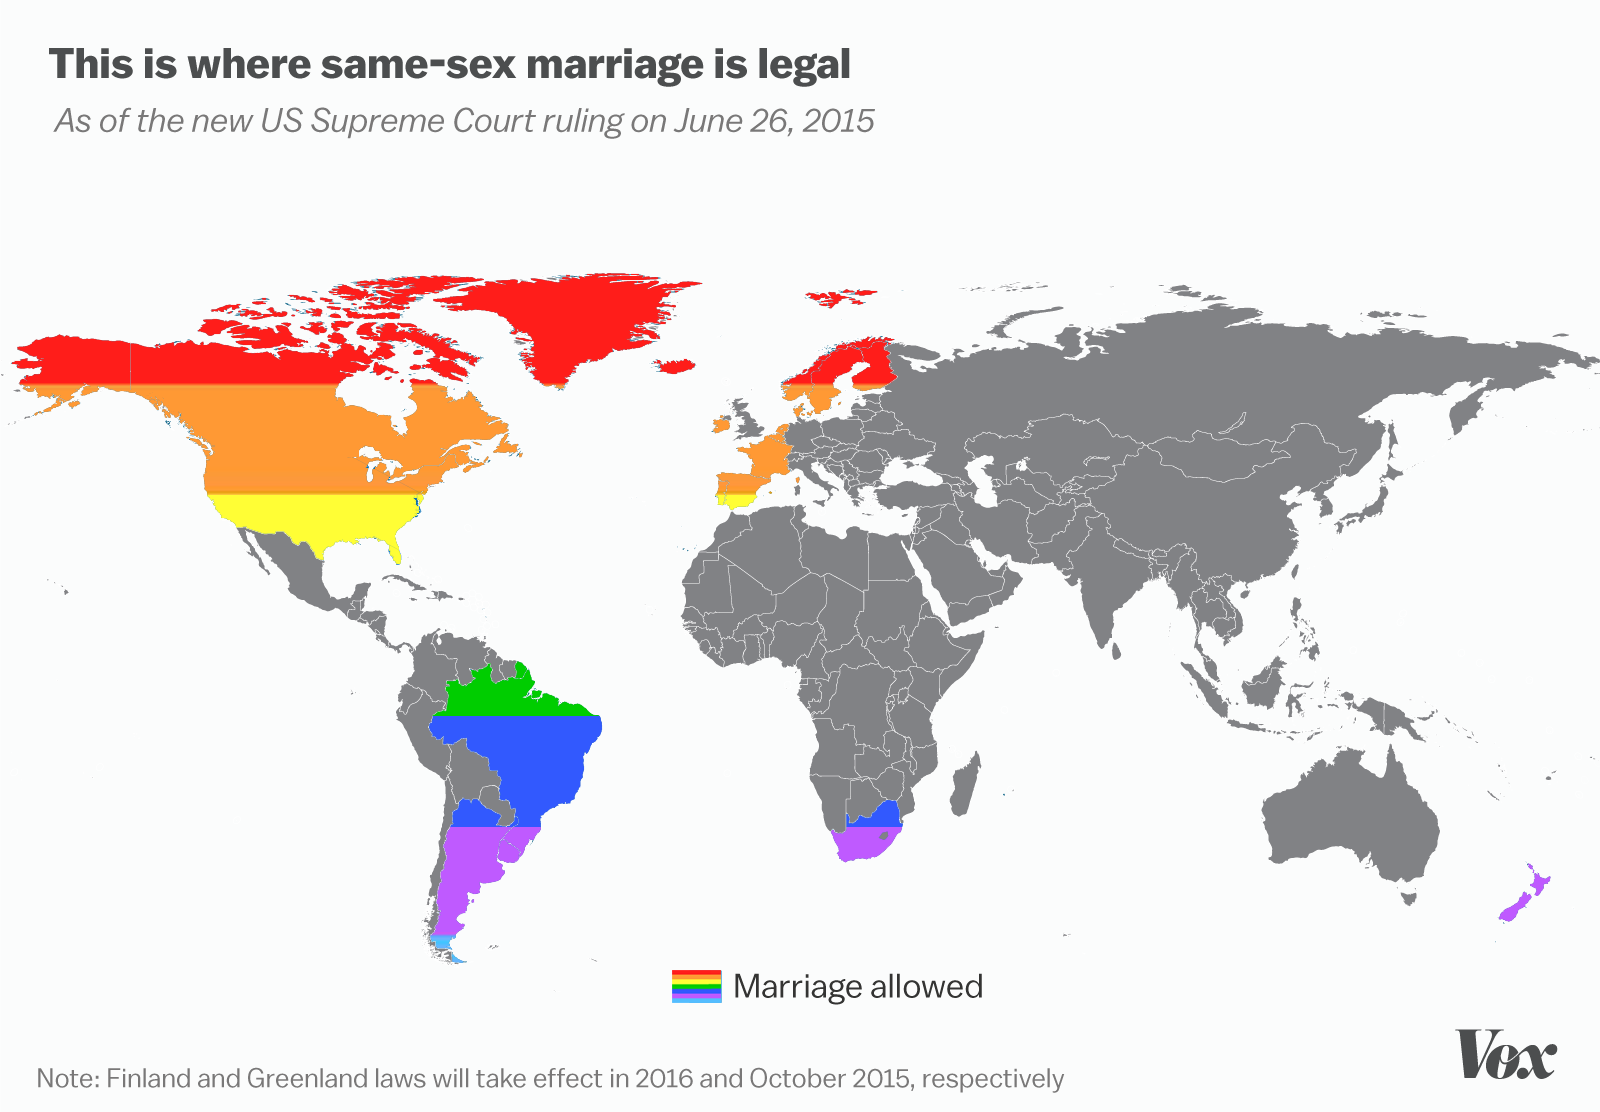 Same__marriage_map_rainbow2.0 Same Marriage Us Map on metaphysical map, love wins map, doctrine map, addiction map, modernism map, inbreeding map, stages of life map, middle class map, heredity map, life calling map, sovereignty map, 9gag map, birth control map, food issues map, lawyers map, long trip map, new moon map, numerology map, family interaction map,